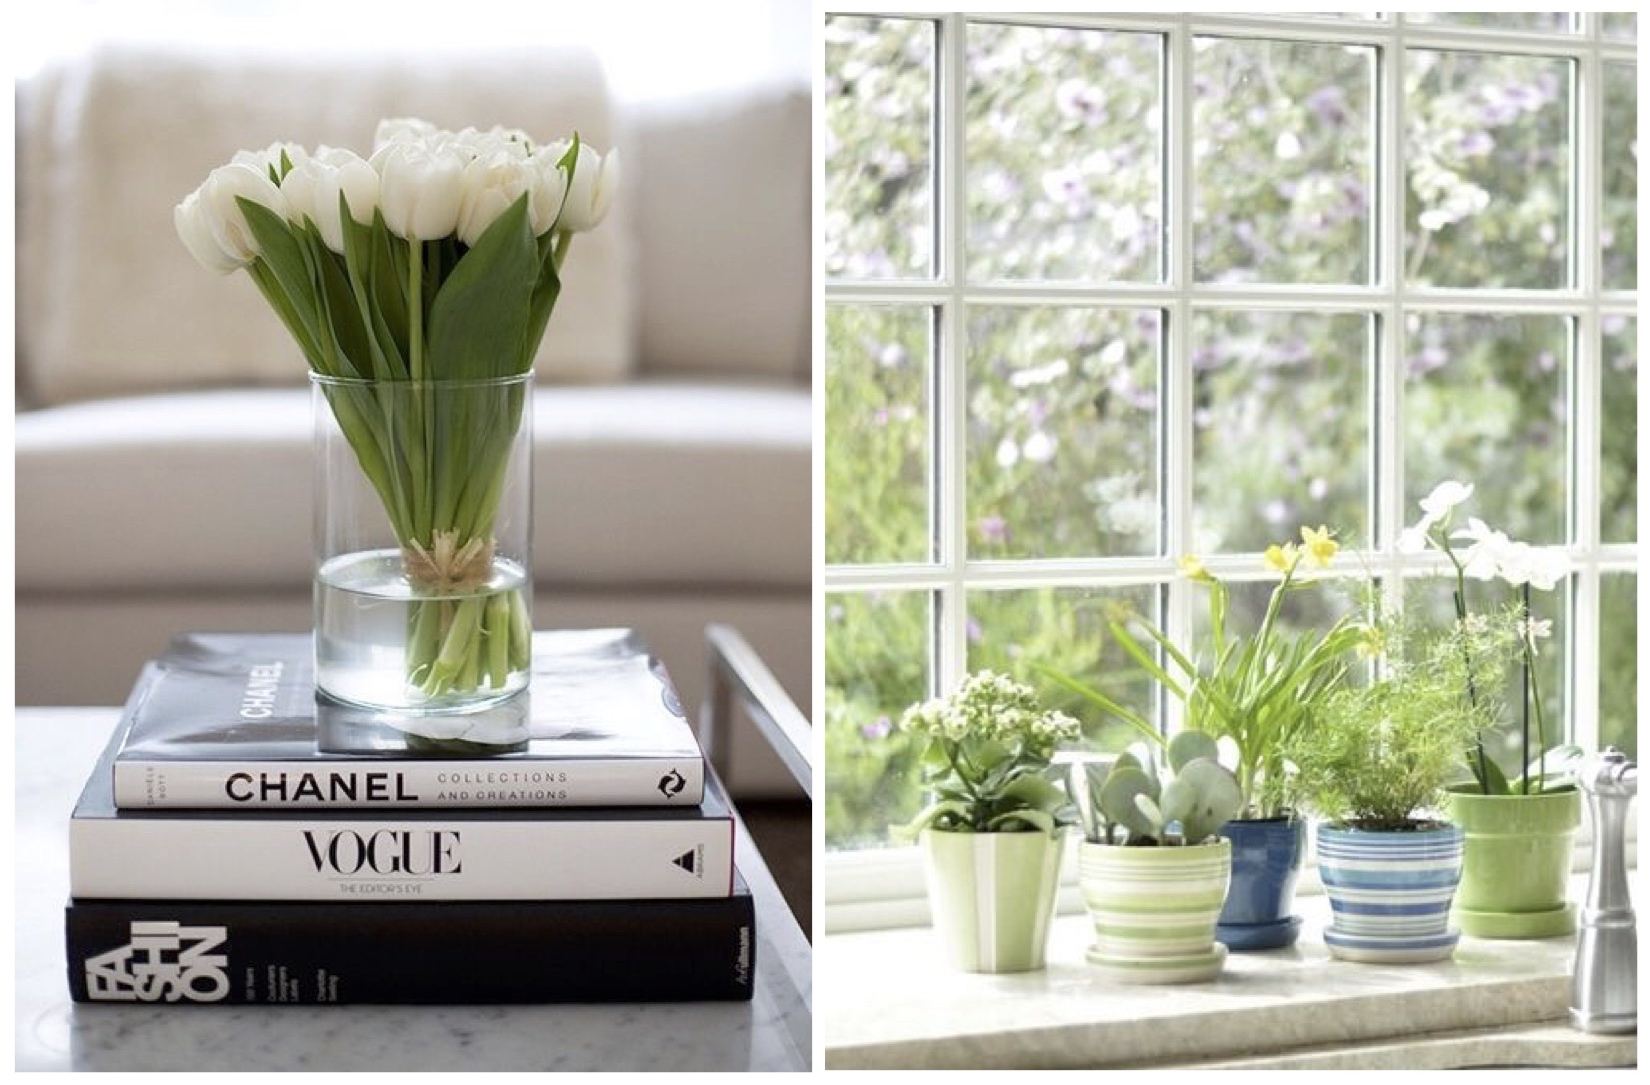 Last but not least, infusing greenery throughout your home -adding fresh flowers of the season or planting an indoor herb garden - is the best way to bring the outdoors in and welcome the spring season into your home.